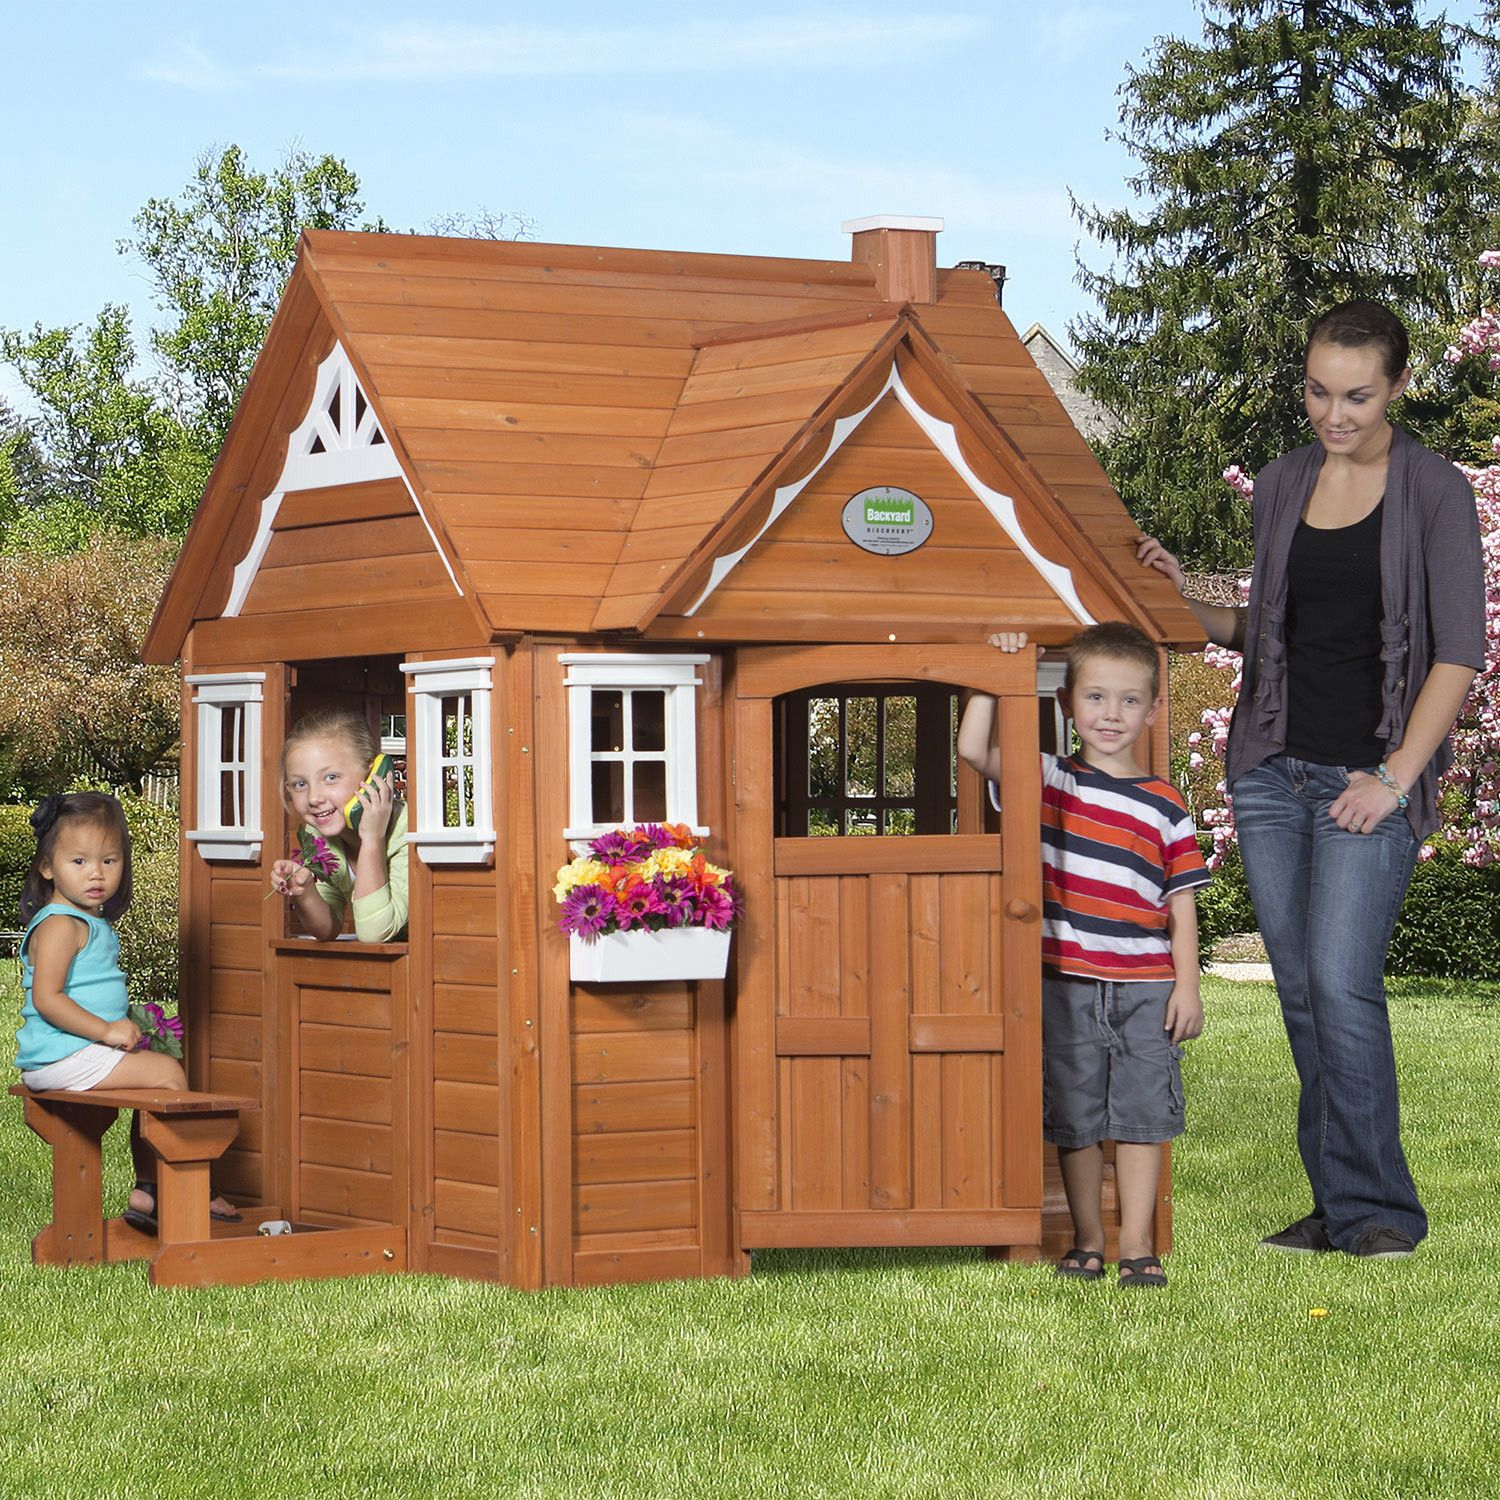 Outdoor Wooden Cedar Cottage Play House for Kids